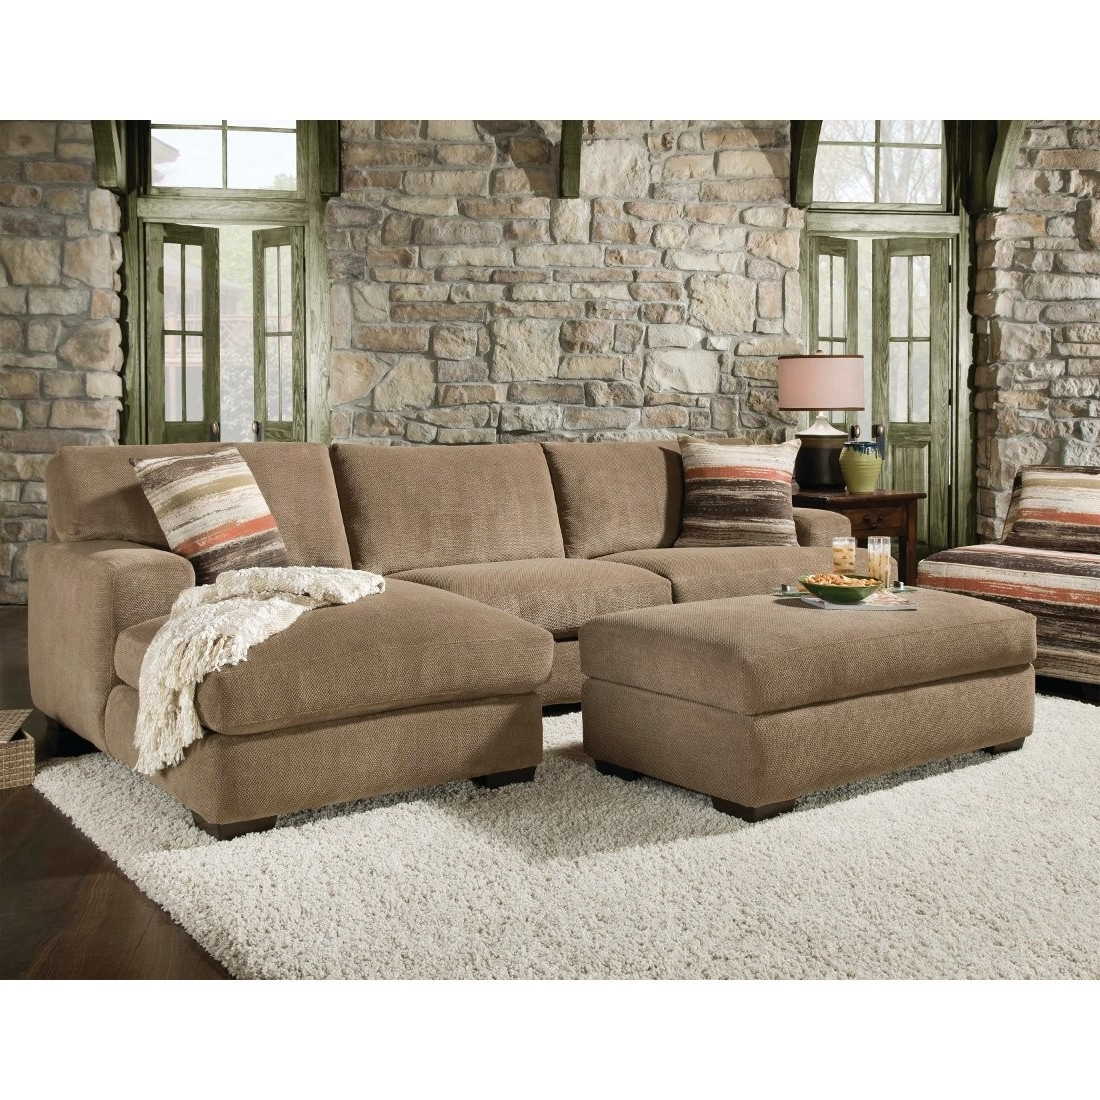 Sofa : Extra Large Sectionals With Chaise Deep Sofas Deep Couches In Best And Newest Raymour And Flanigan Sectional Sofas (View 17 of 20)